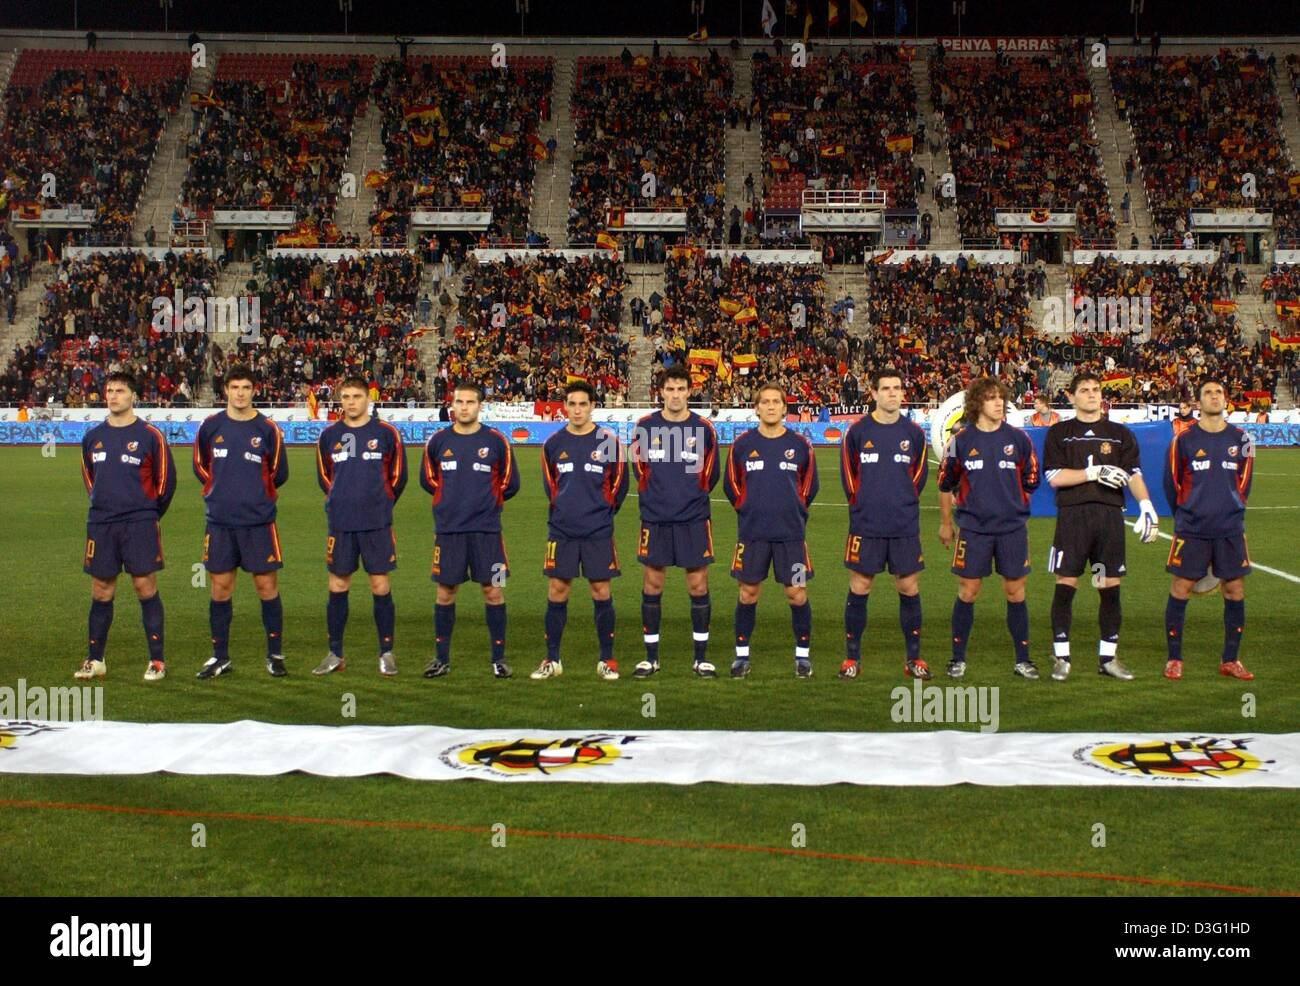 (dpa) - The Spanish national soccer team poses for the camera on the pitch just before the kick off of the international - Stock Image